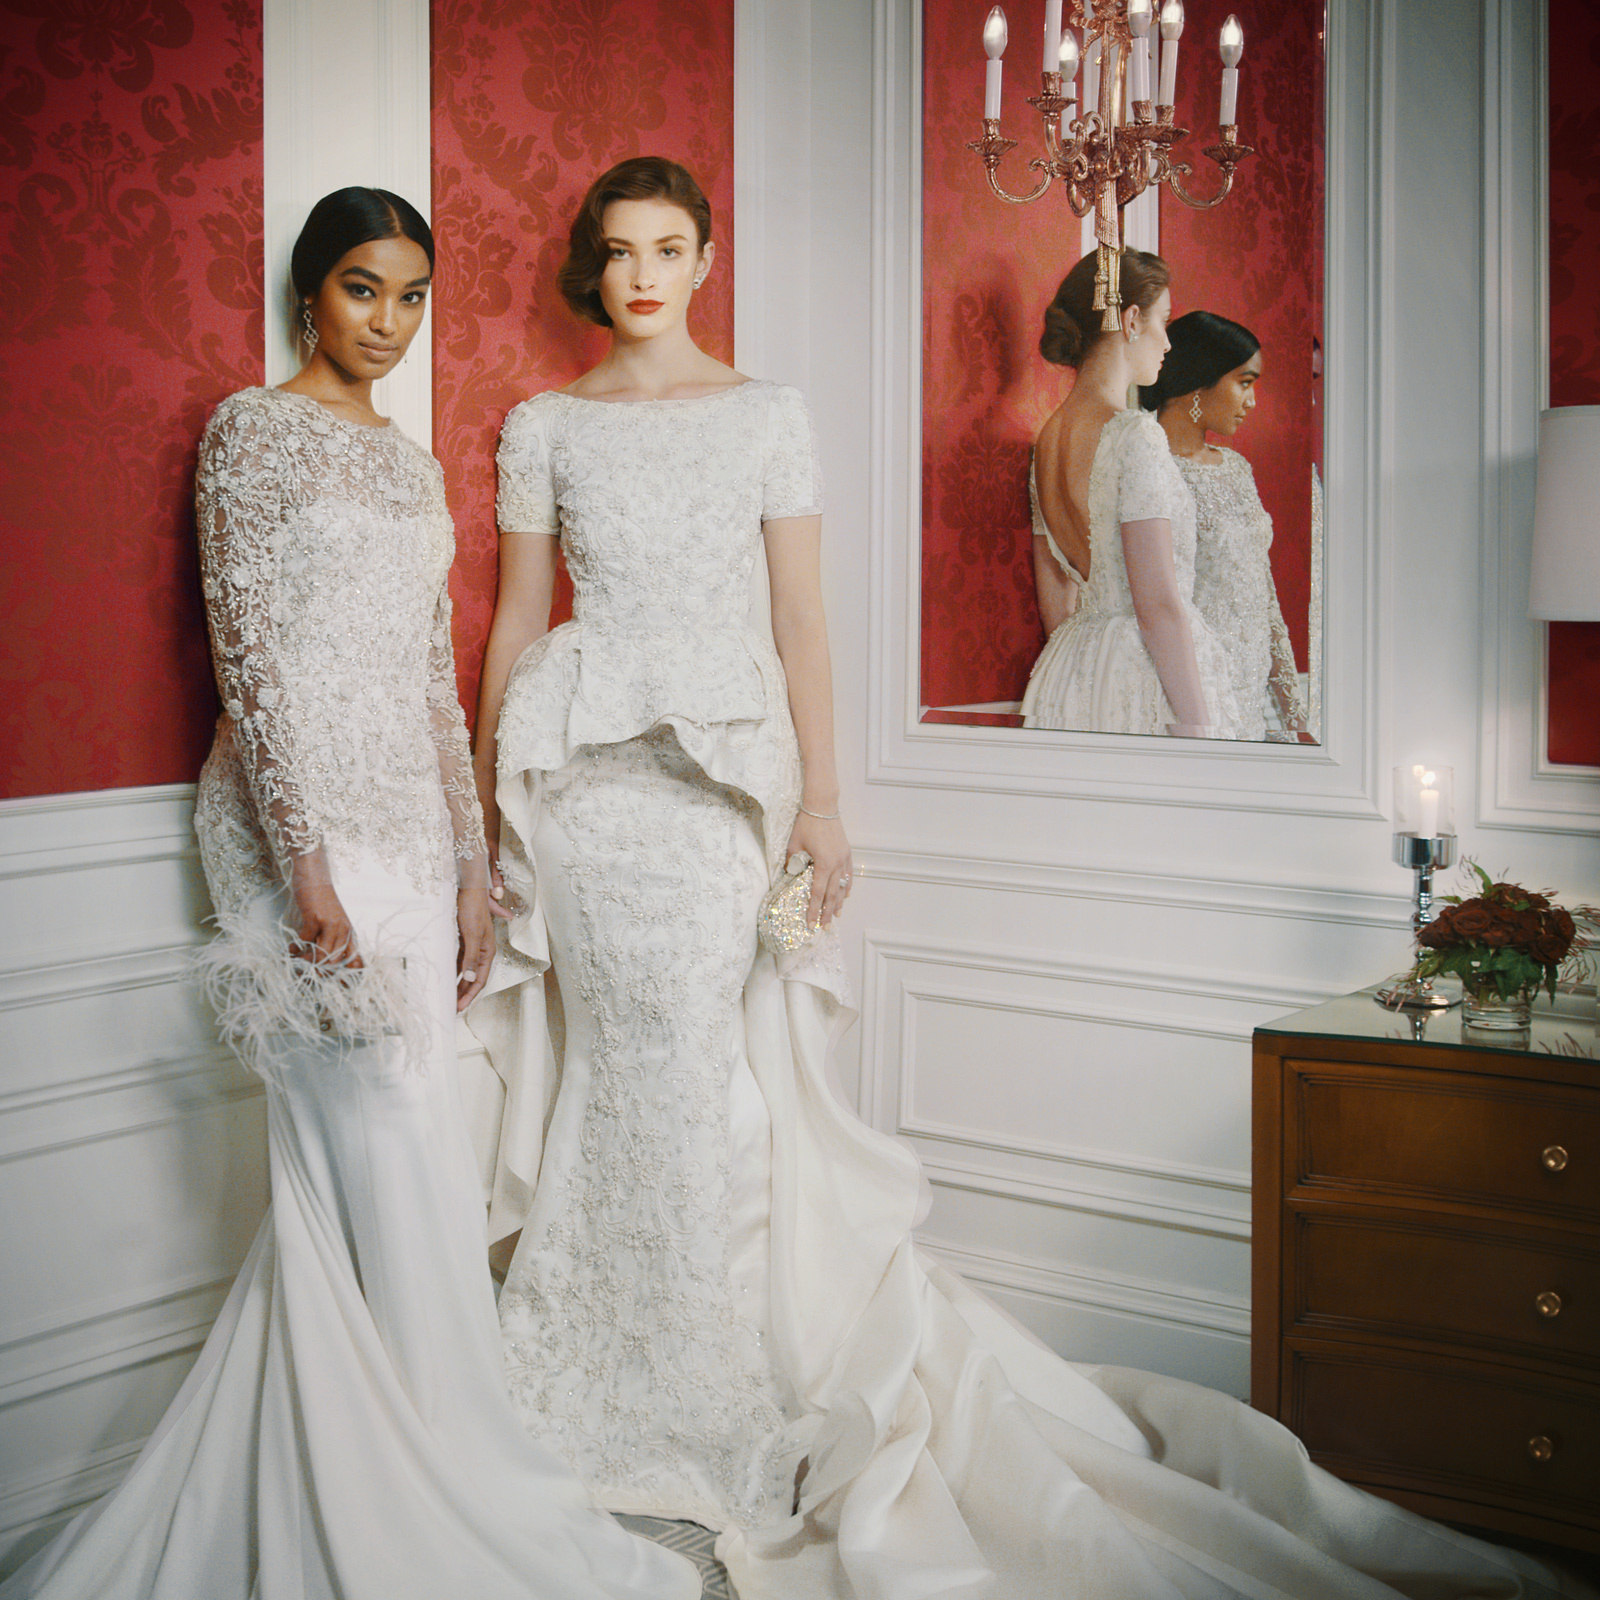 Marchesa-Bridal-Capsule-Collection-02